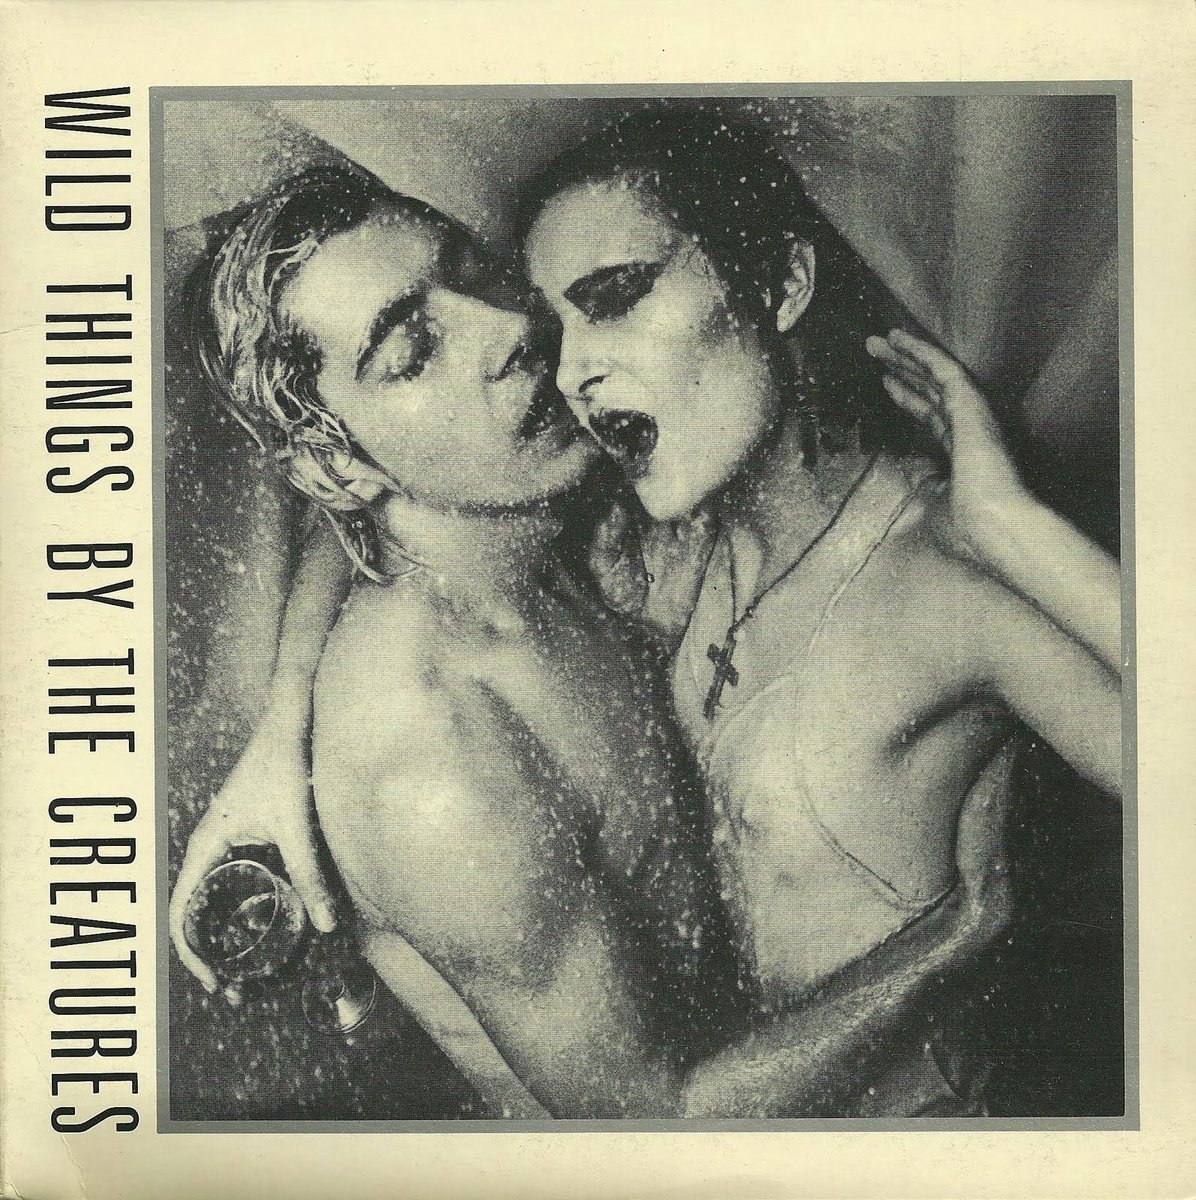 The photo on the cover of this The Creatures EP was shot in a bathroom in the Newcastle Holiday Inn. #TOTP https://t.co/MZ1qdgimud